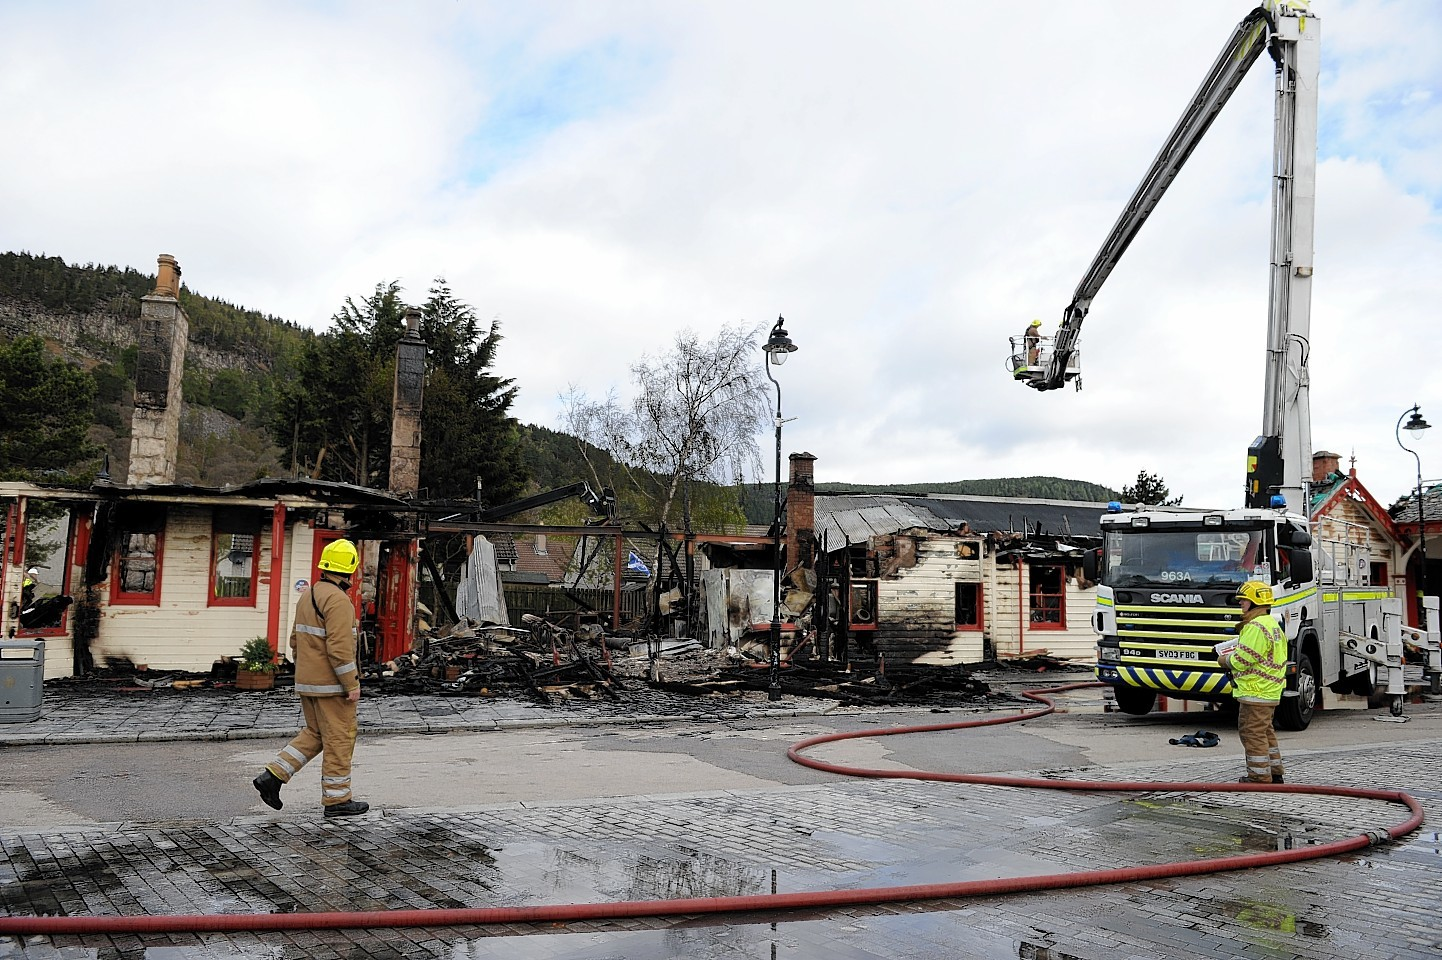 The Old Royal Station in Ballater, Aberdeenshire, was destroyed by fire